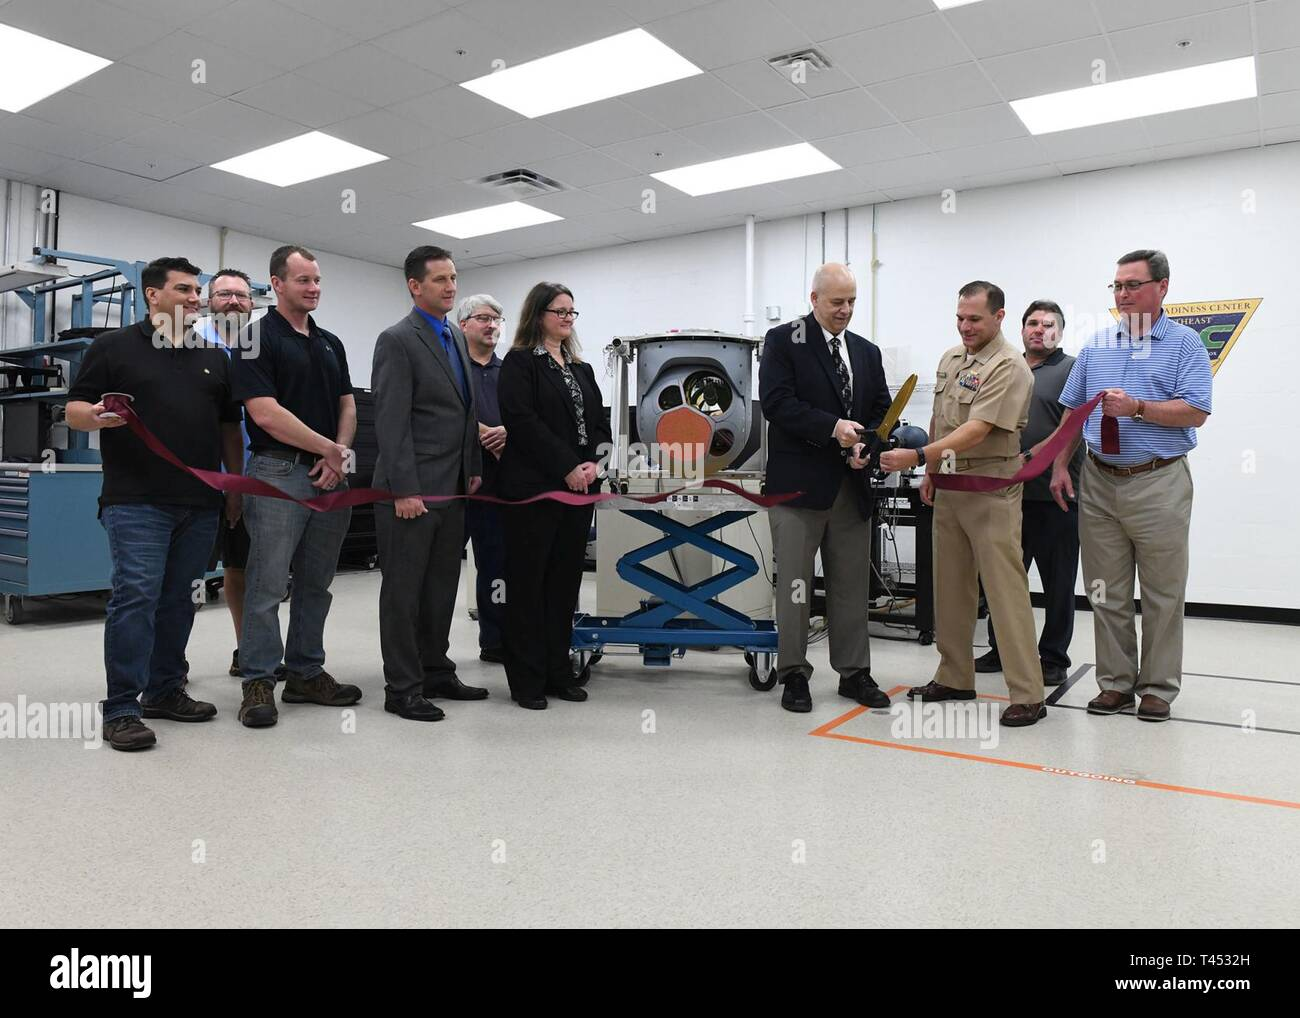 JACKSONVILLE, Fla. (Feb. 27, 2019) Members of Fleet Readiness Center Southeast and L3 WESCAM cut the ribbon to declare the Navy depot's maintenance capability on the company's MX-20 turret on Wednesday. - Stock Image